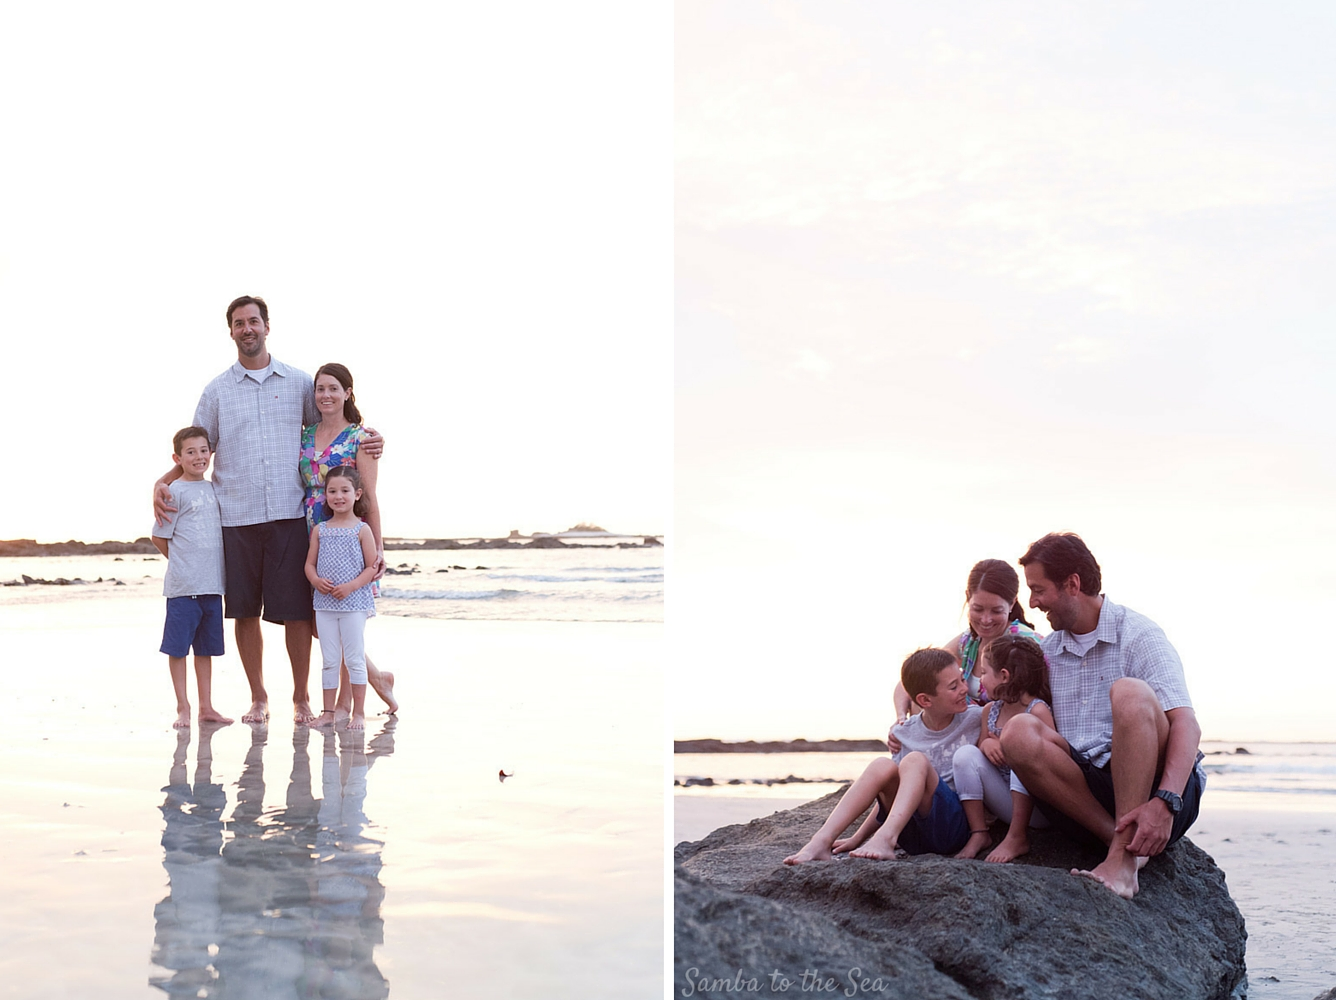 Family portraits during sunset in Tamarindo, Costa Rica. Photographed by Kristen M. Brown, Samba to the Sea Photography.